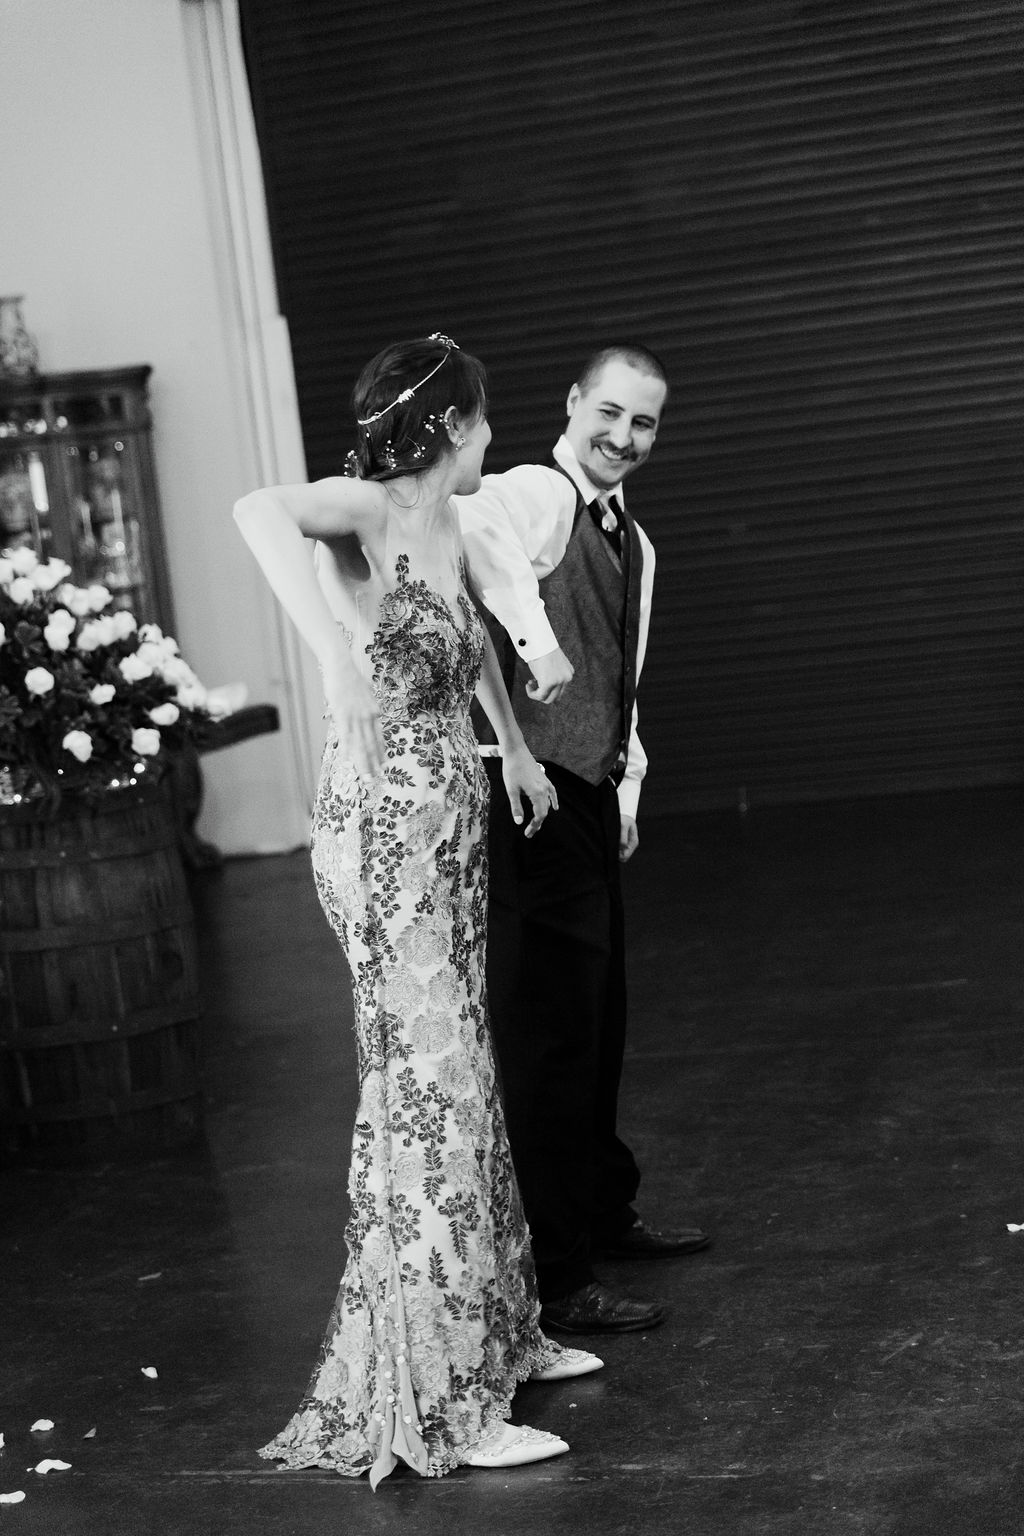 IMGL7255Desiree-Eric-wedding-vaniaelisephotography.jpg